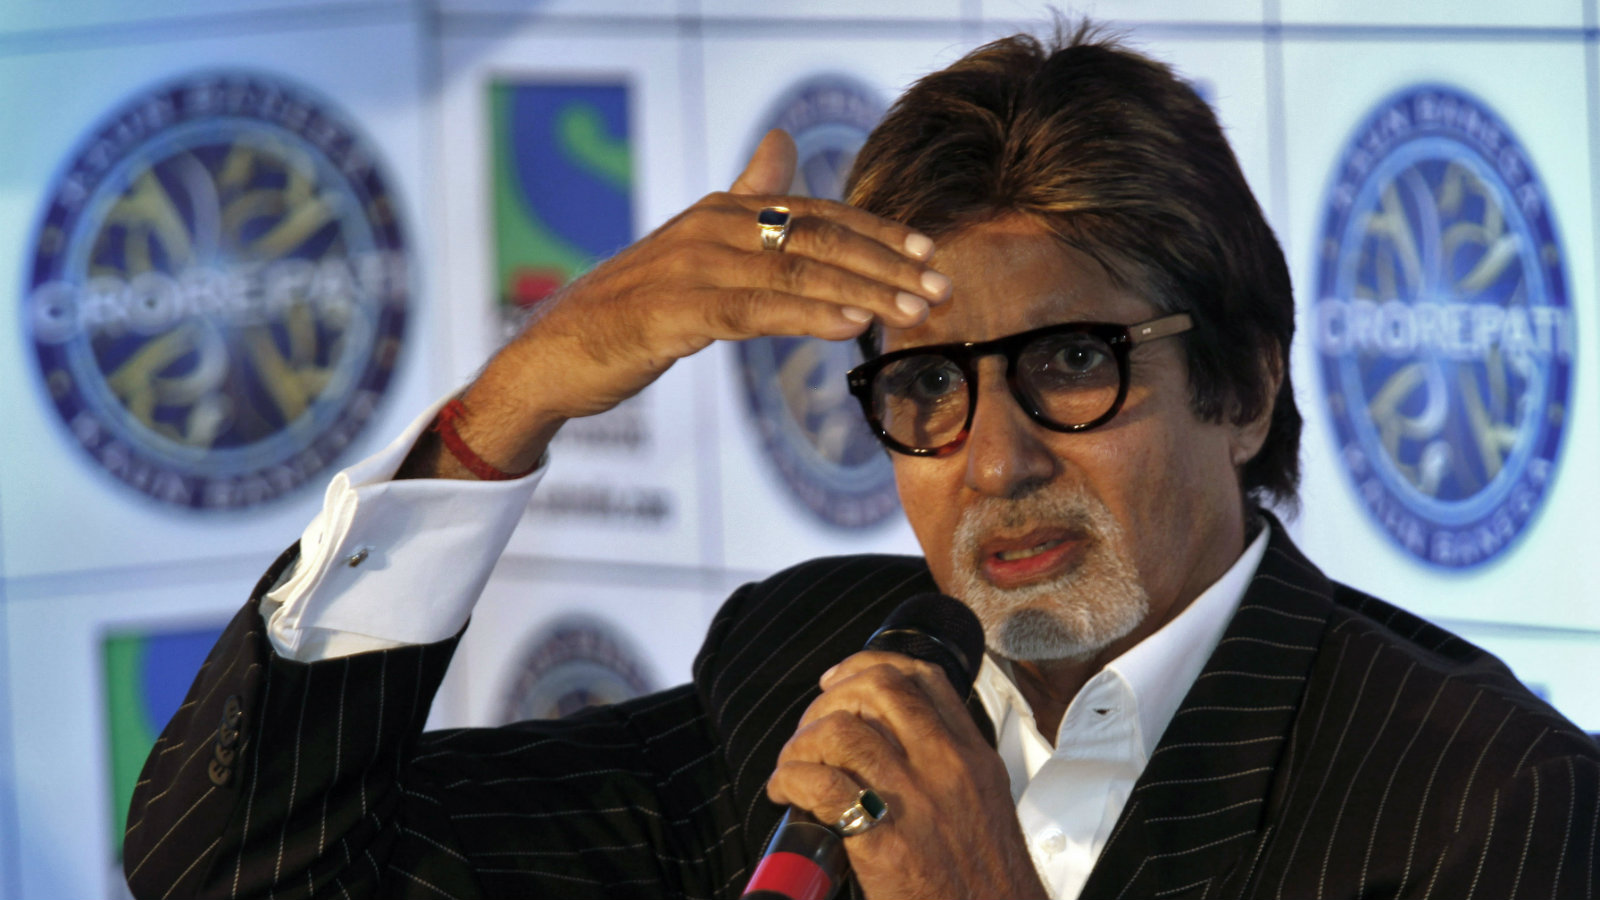 Rupert Murdoch's Star India almost named KBC Kaun Banega Lakhpati